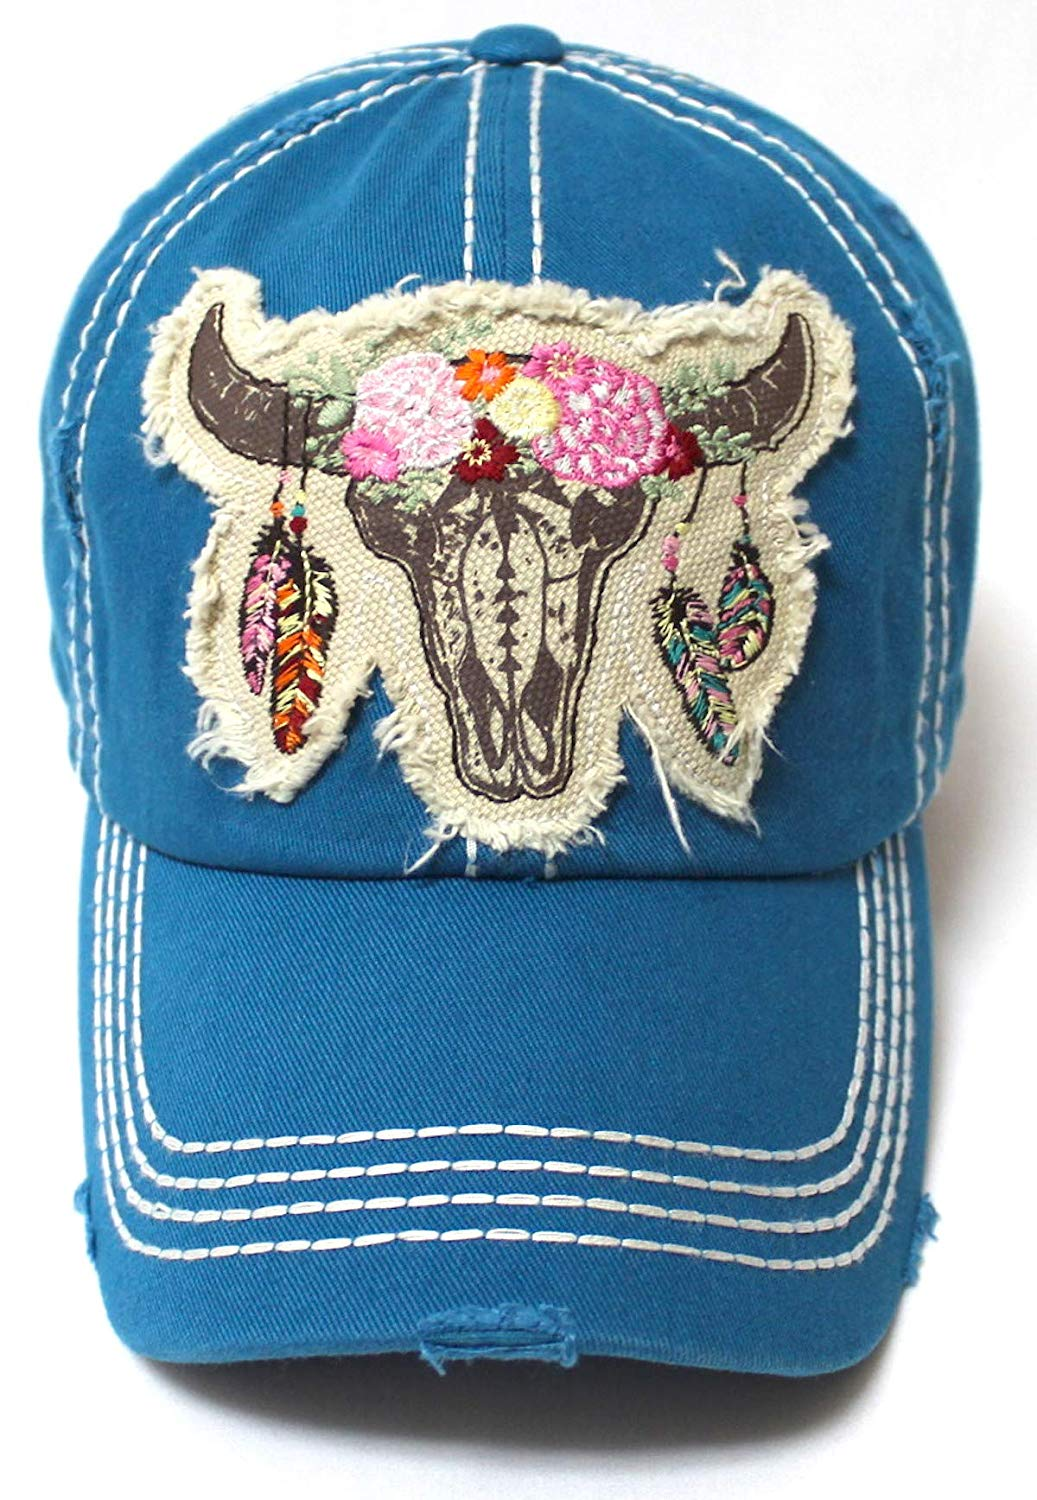 Women's Floral Cow Skull Patch Embroidery Vintage Baseball Hat, Teal Blue - Caps 'N Vintage